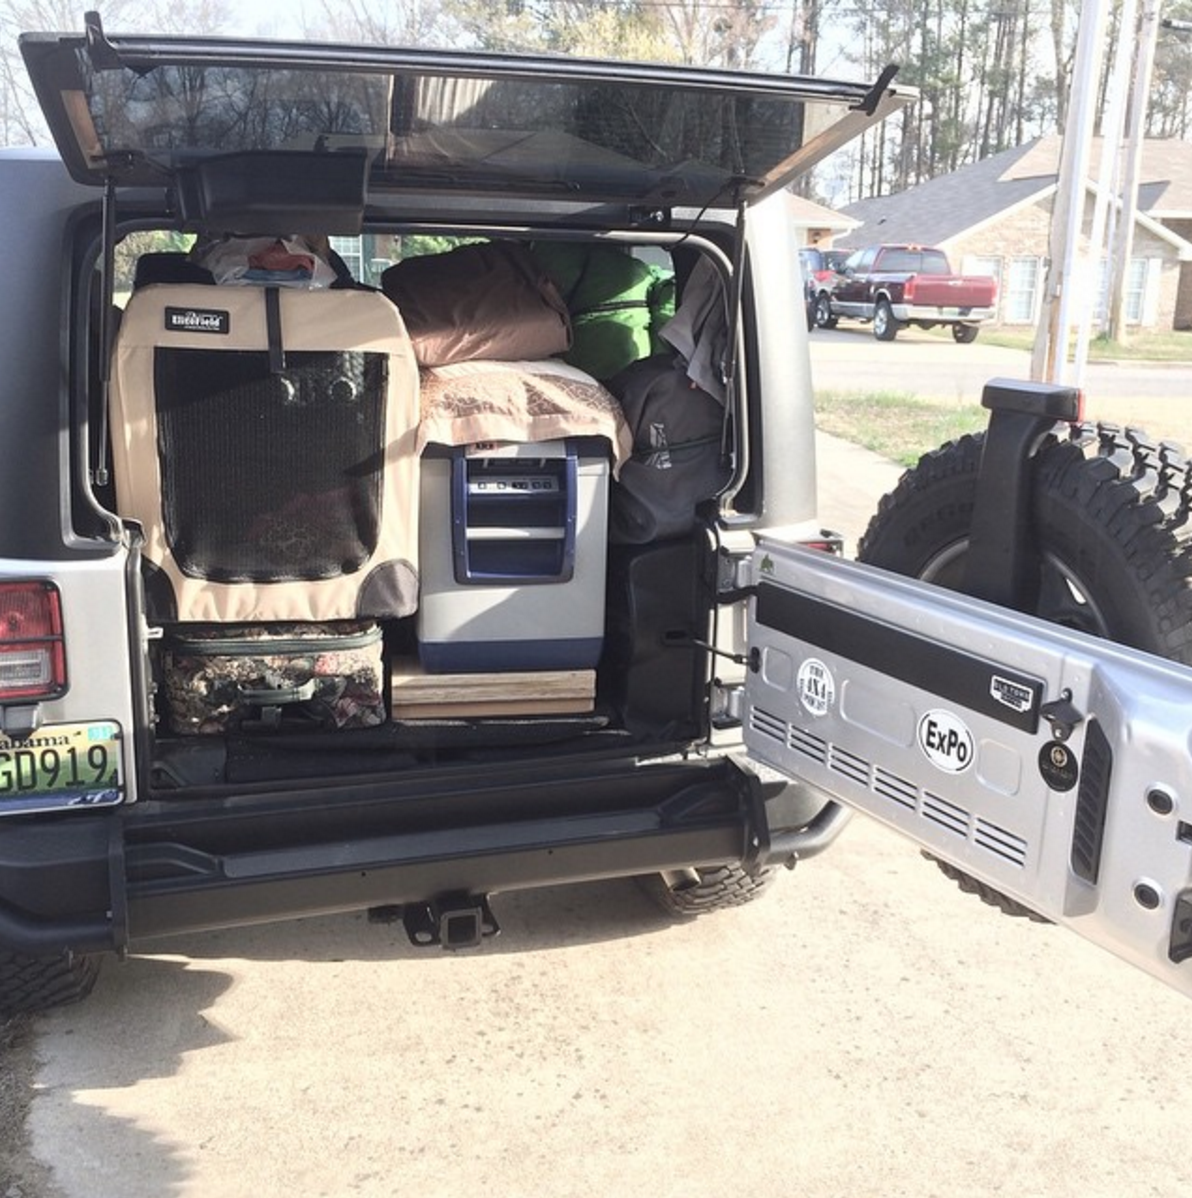 With the back seat out, it is possible squeeze in a fair amount of items. Fortunately, most of these items were transferred to our teardrop camper a few miles down the road.